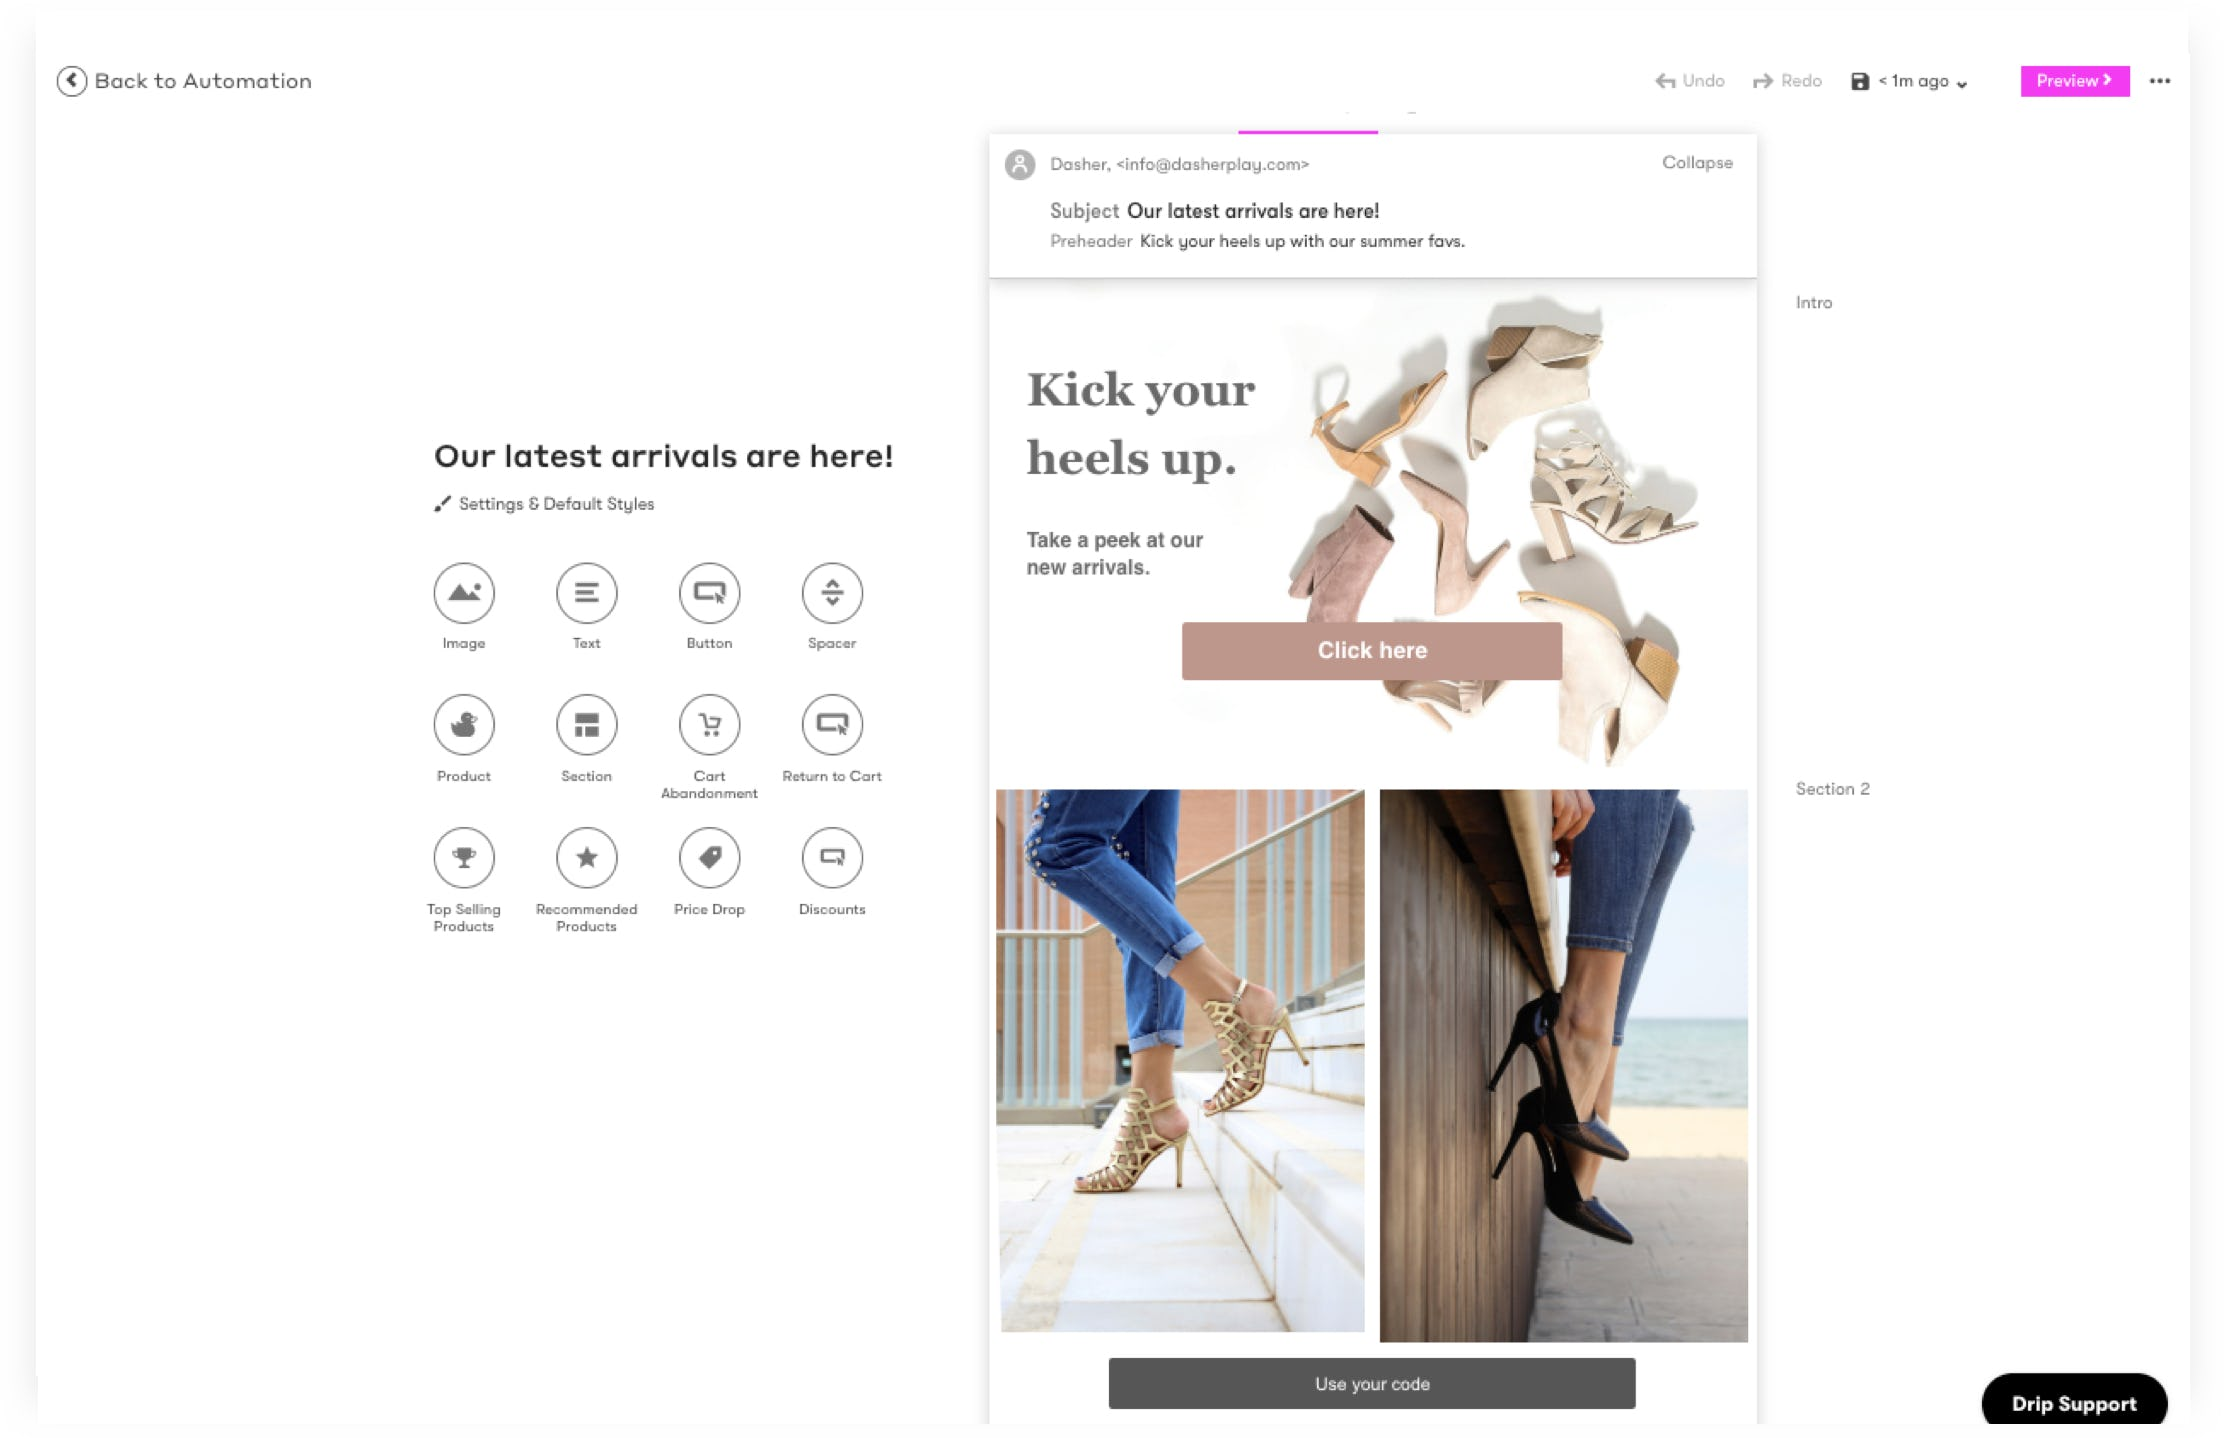 Drip Software - Visual Email Builder - Create personalized, branded emails with our simple yet powerful visual email builder.